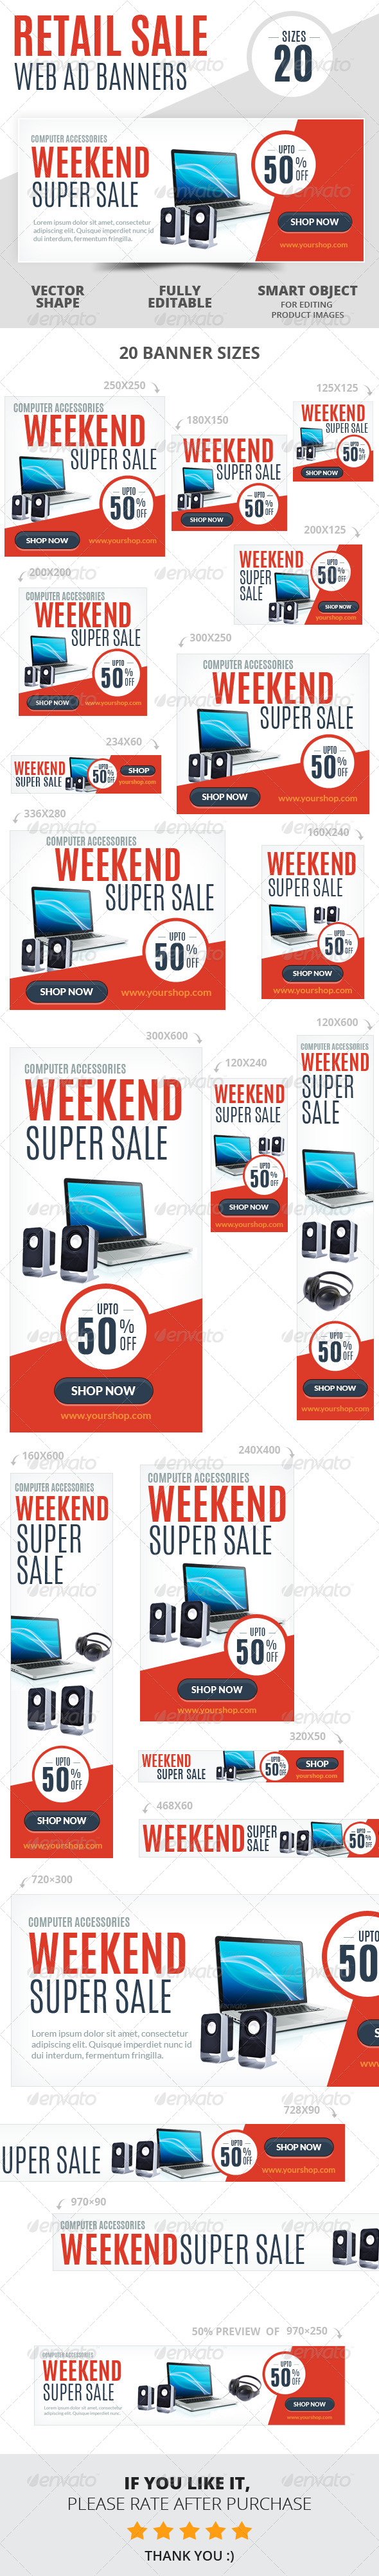 GraphicRiver Weekend Super Sale Retail Web Ad Banners 6709467